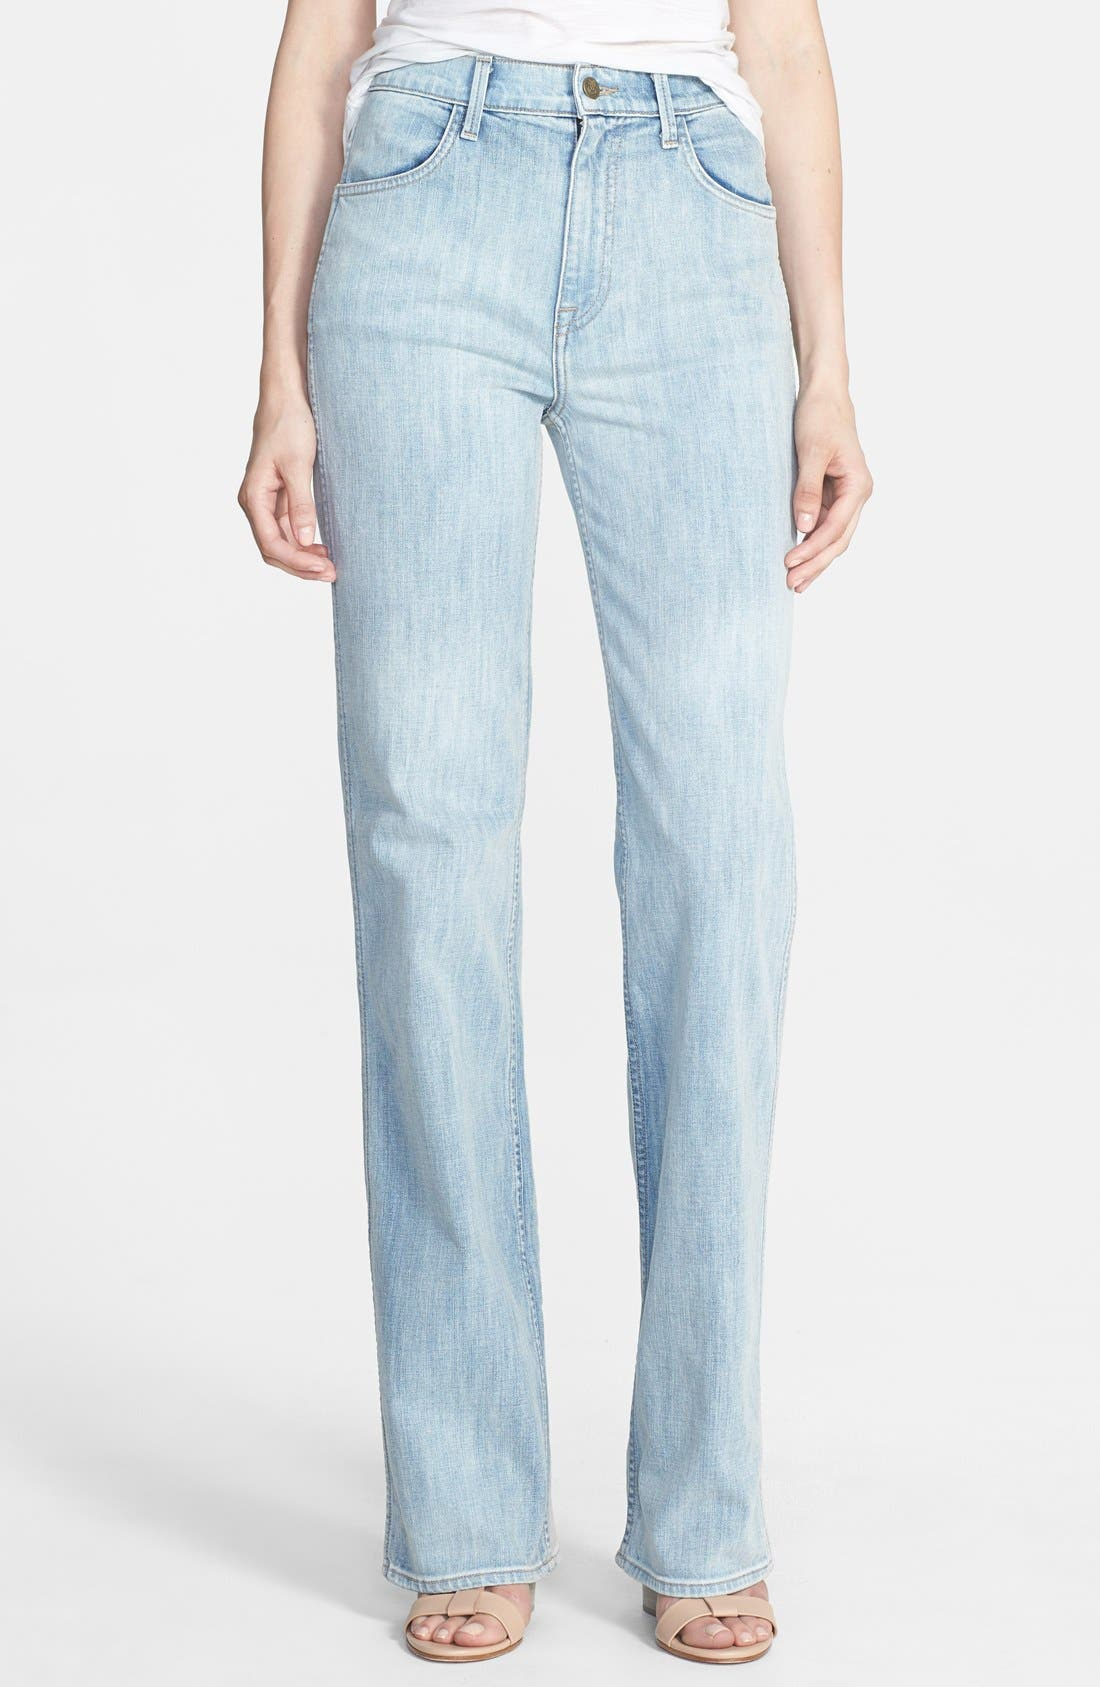 Main Image - Wildfox 'Luca' High Rise Straight Leg Jeans (Faithful)